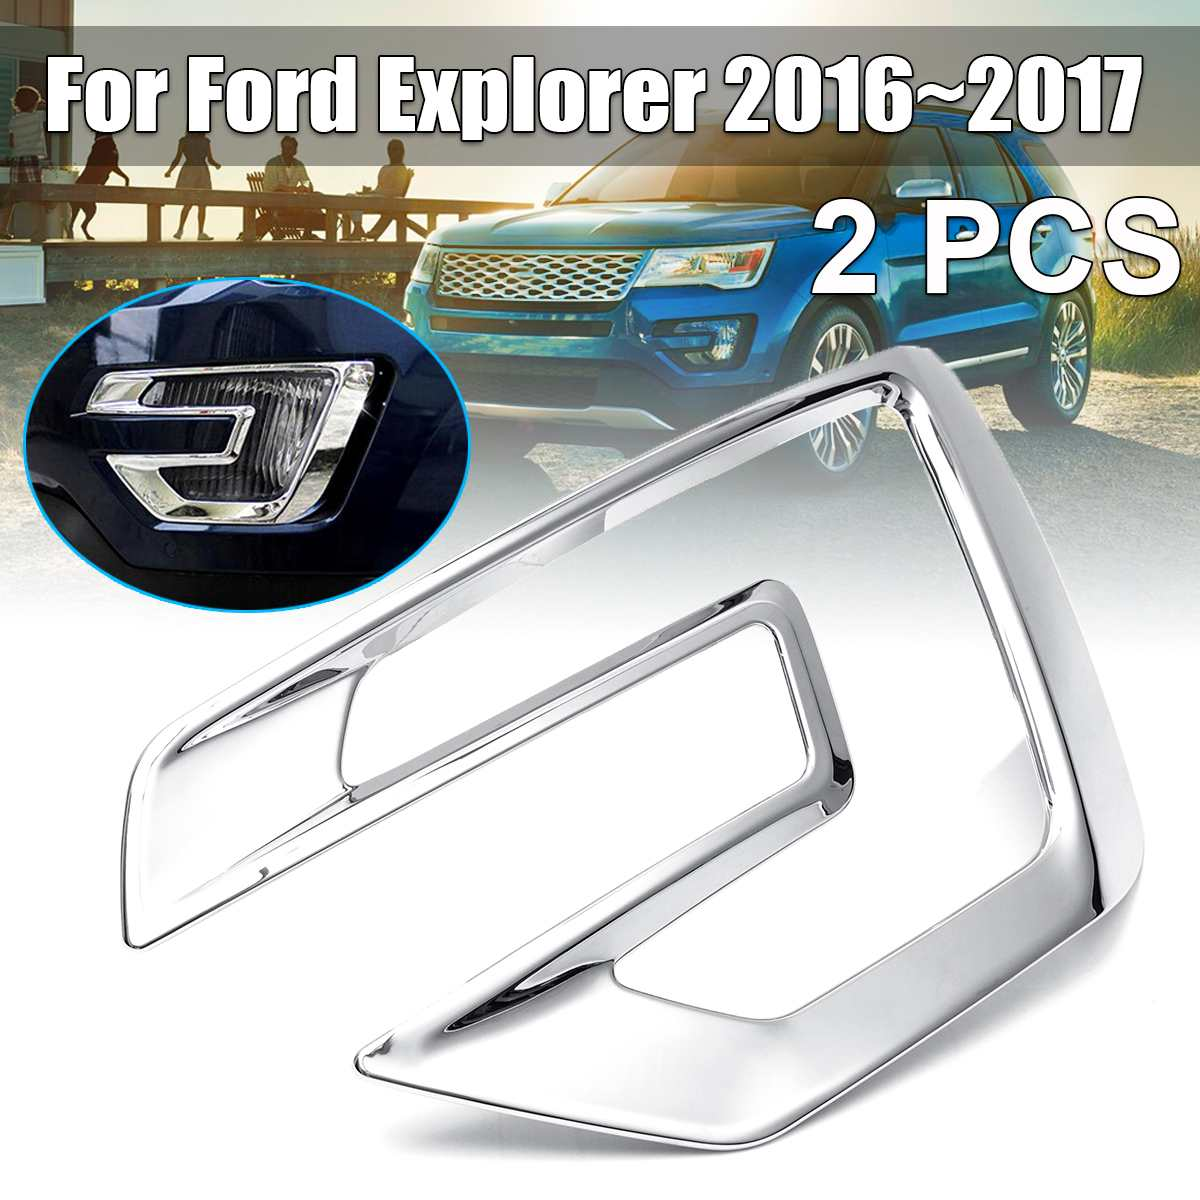 2Pcs for F ord Explorer 2016-2017 ABS Chromed Accessories Front Fog Light Lamp Trim Molding Garnish Strip Eyebrow Eyelid(China)